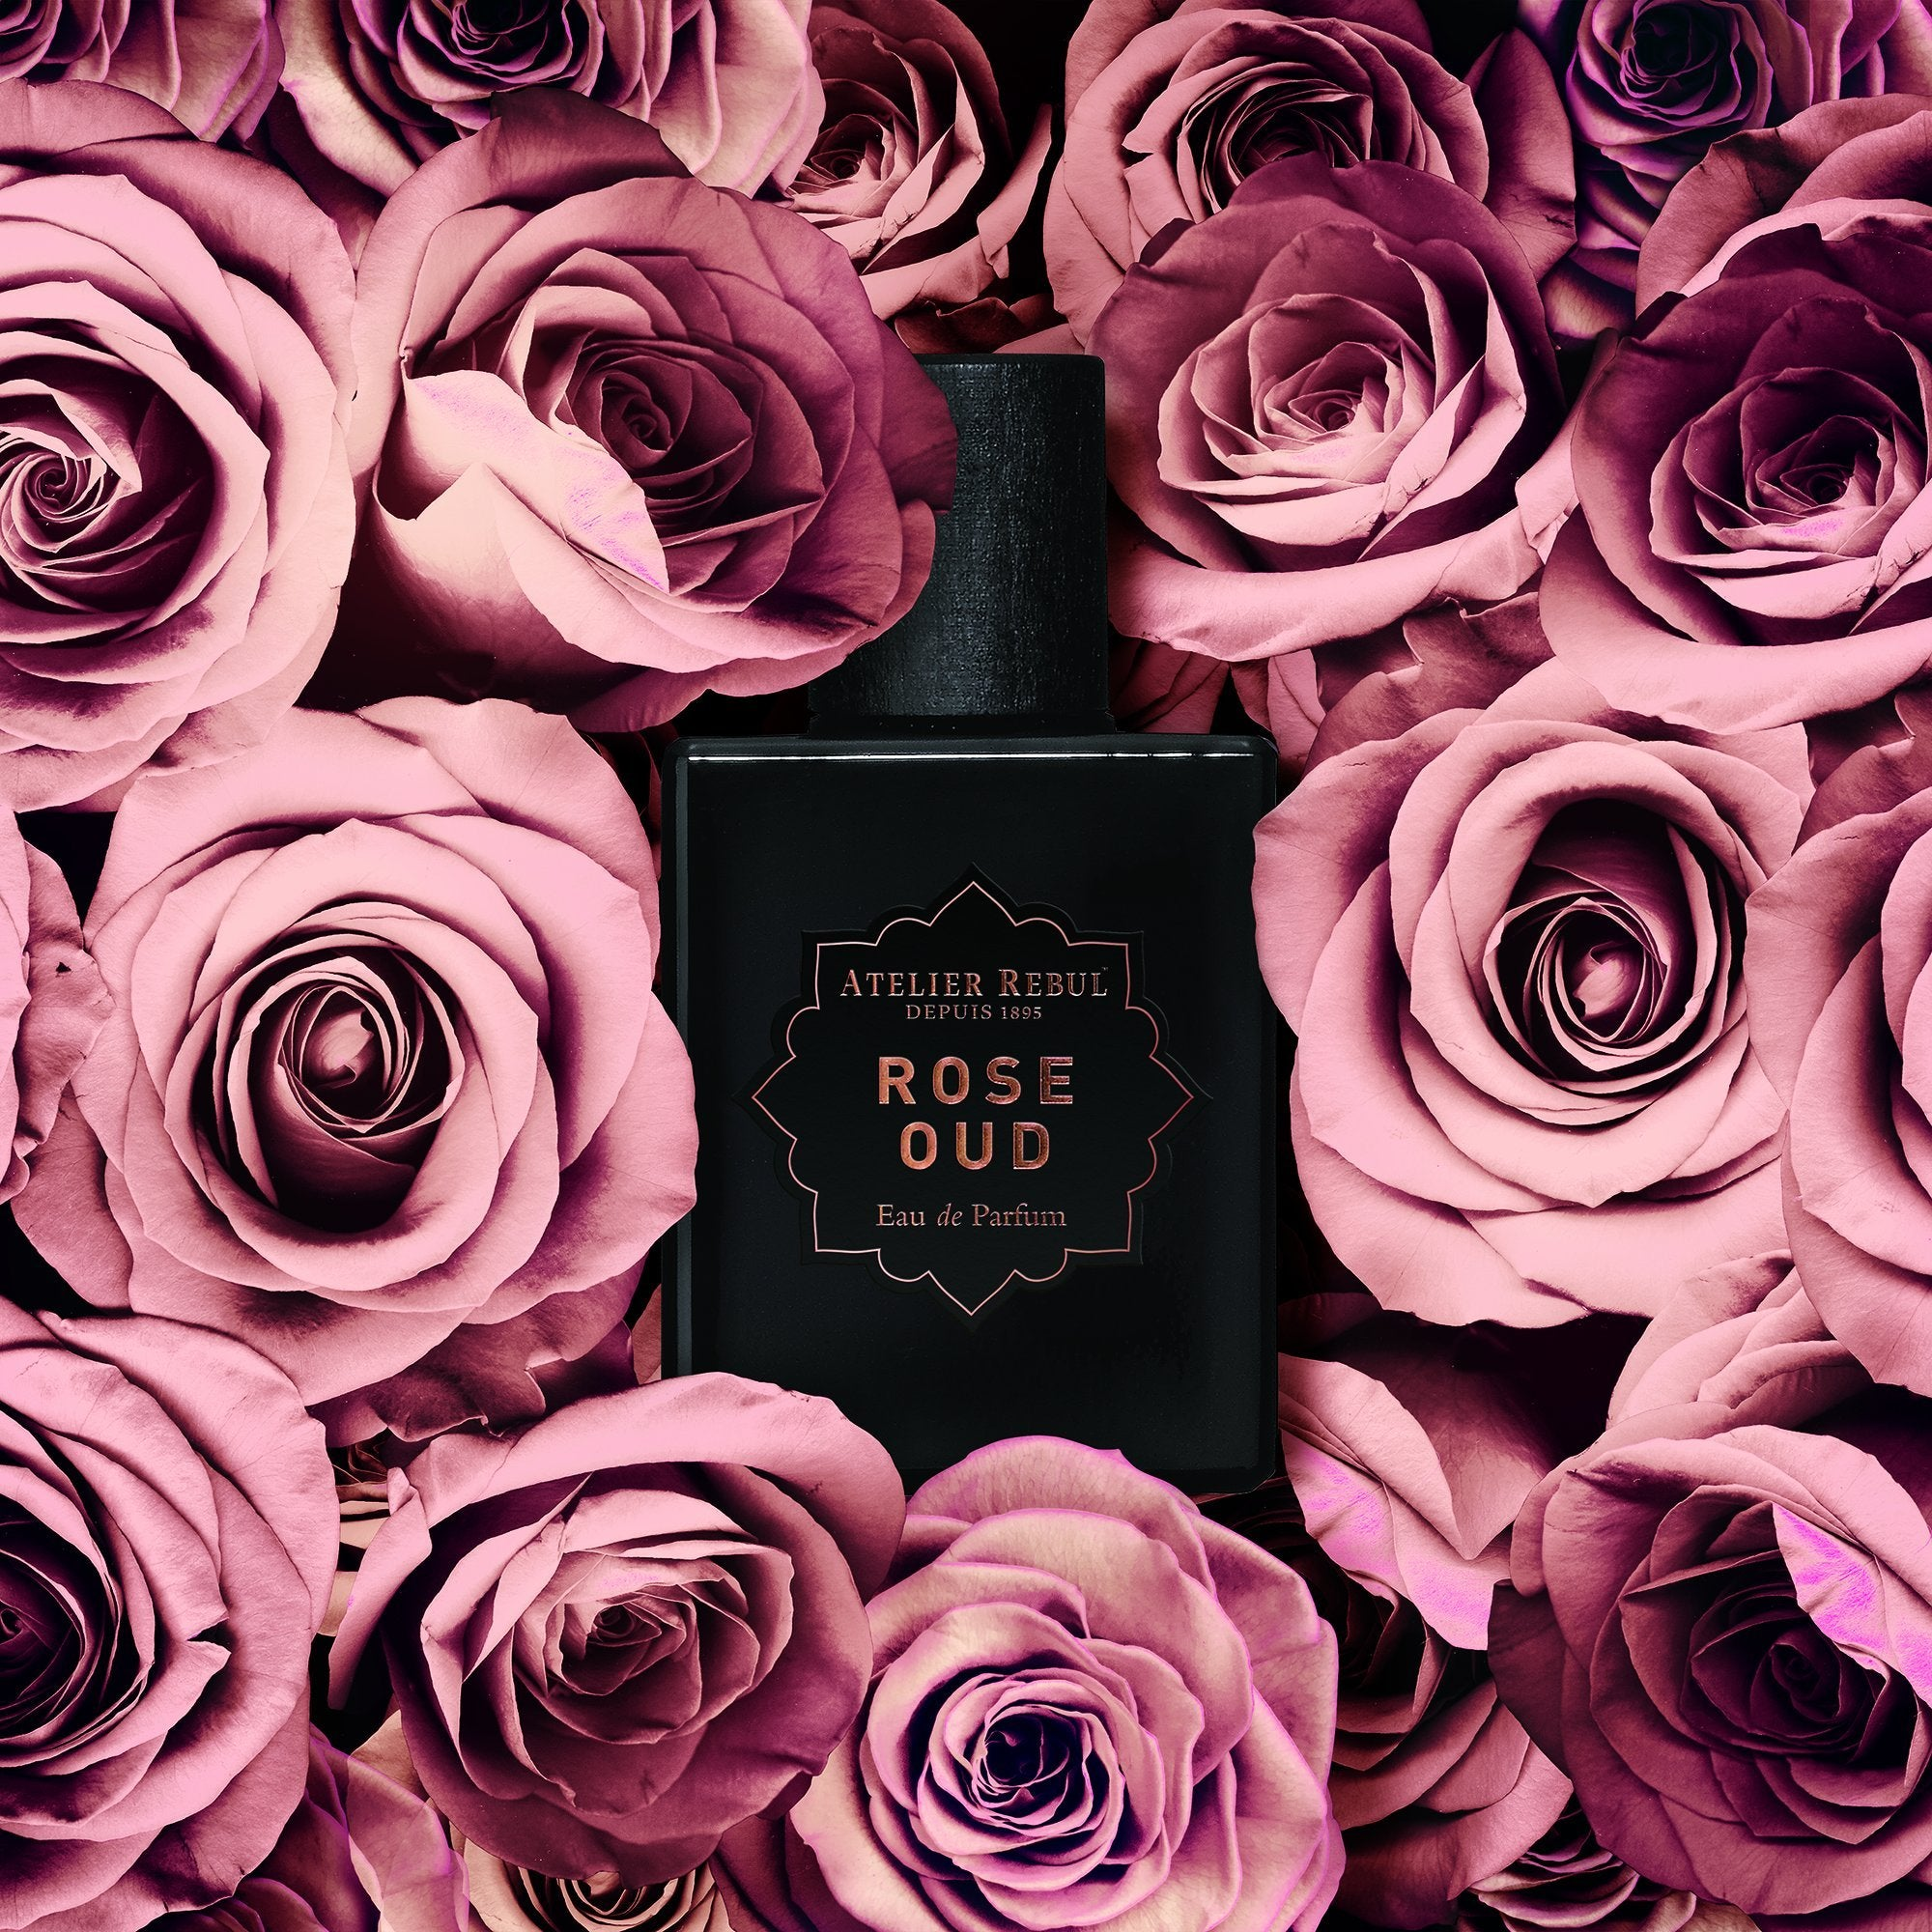 Rose Oud 50ml Eau de Parfum for Women